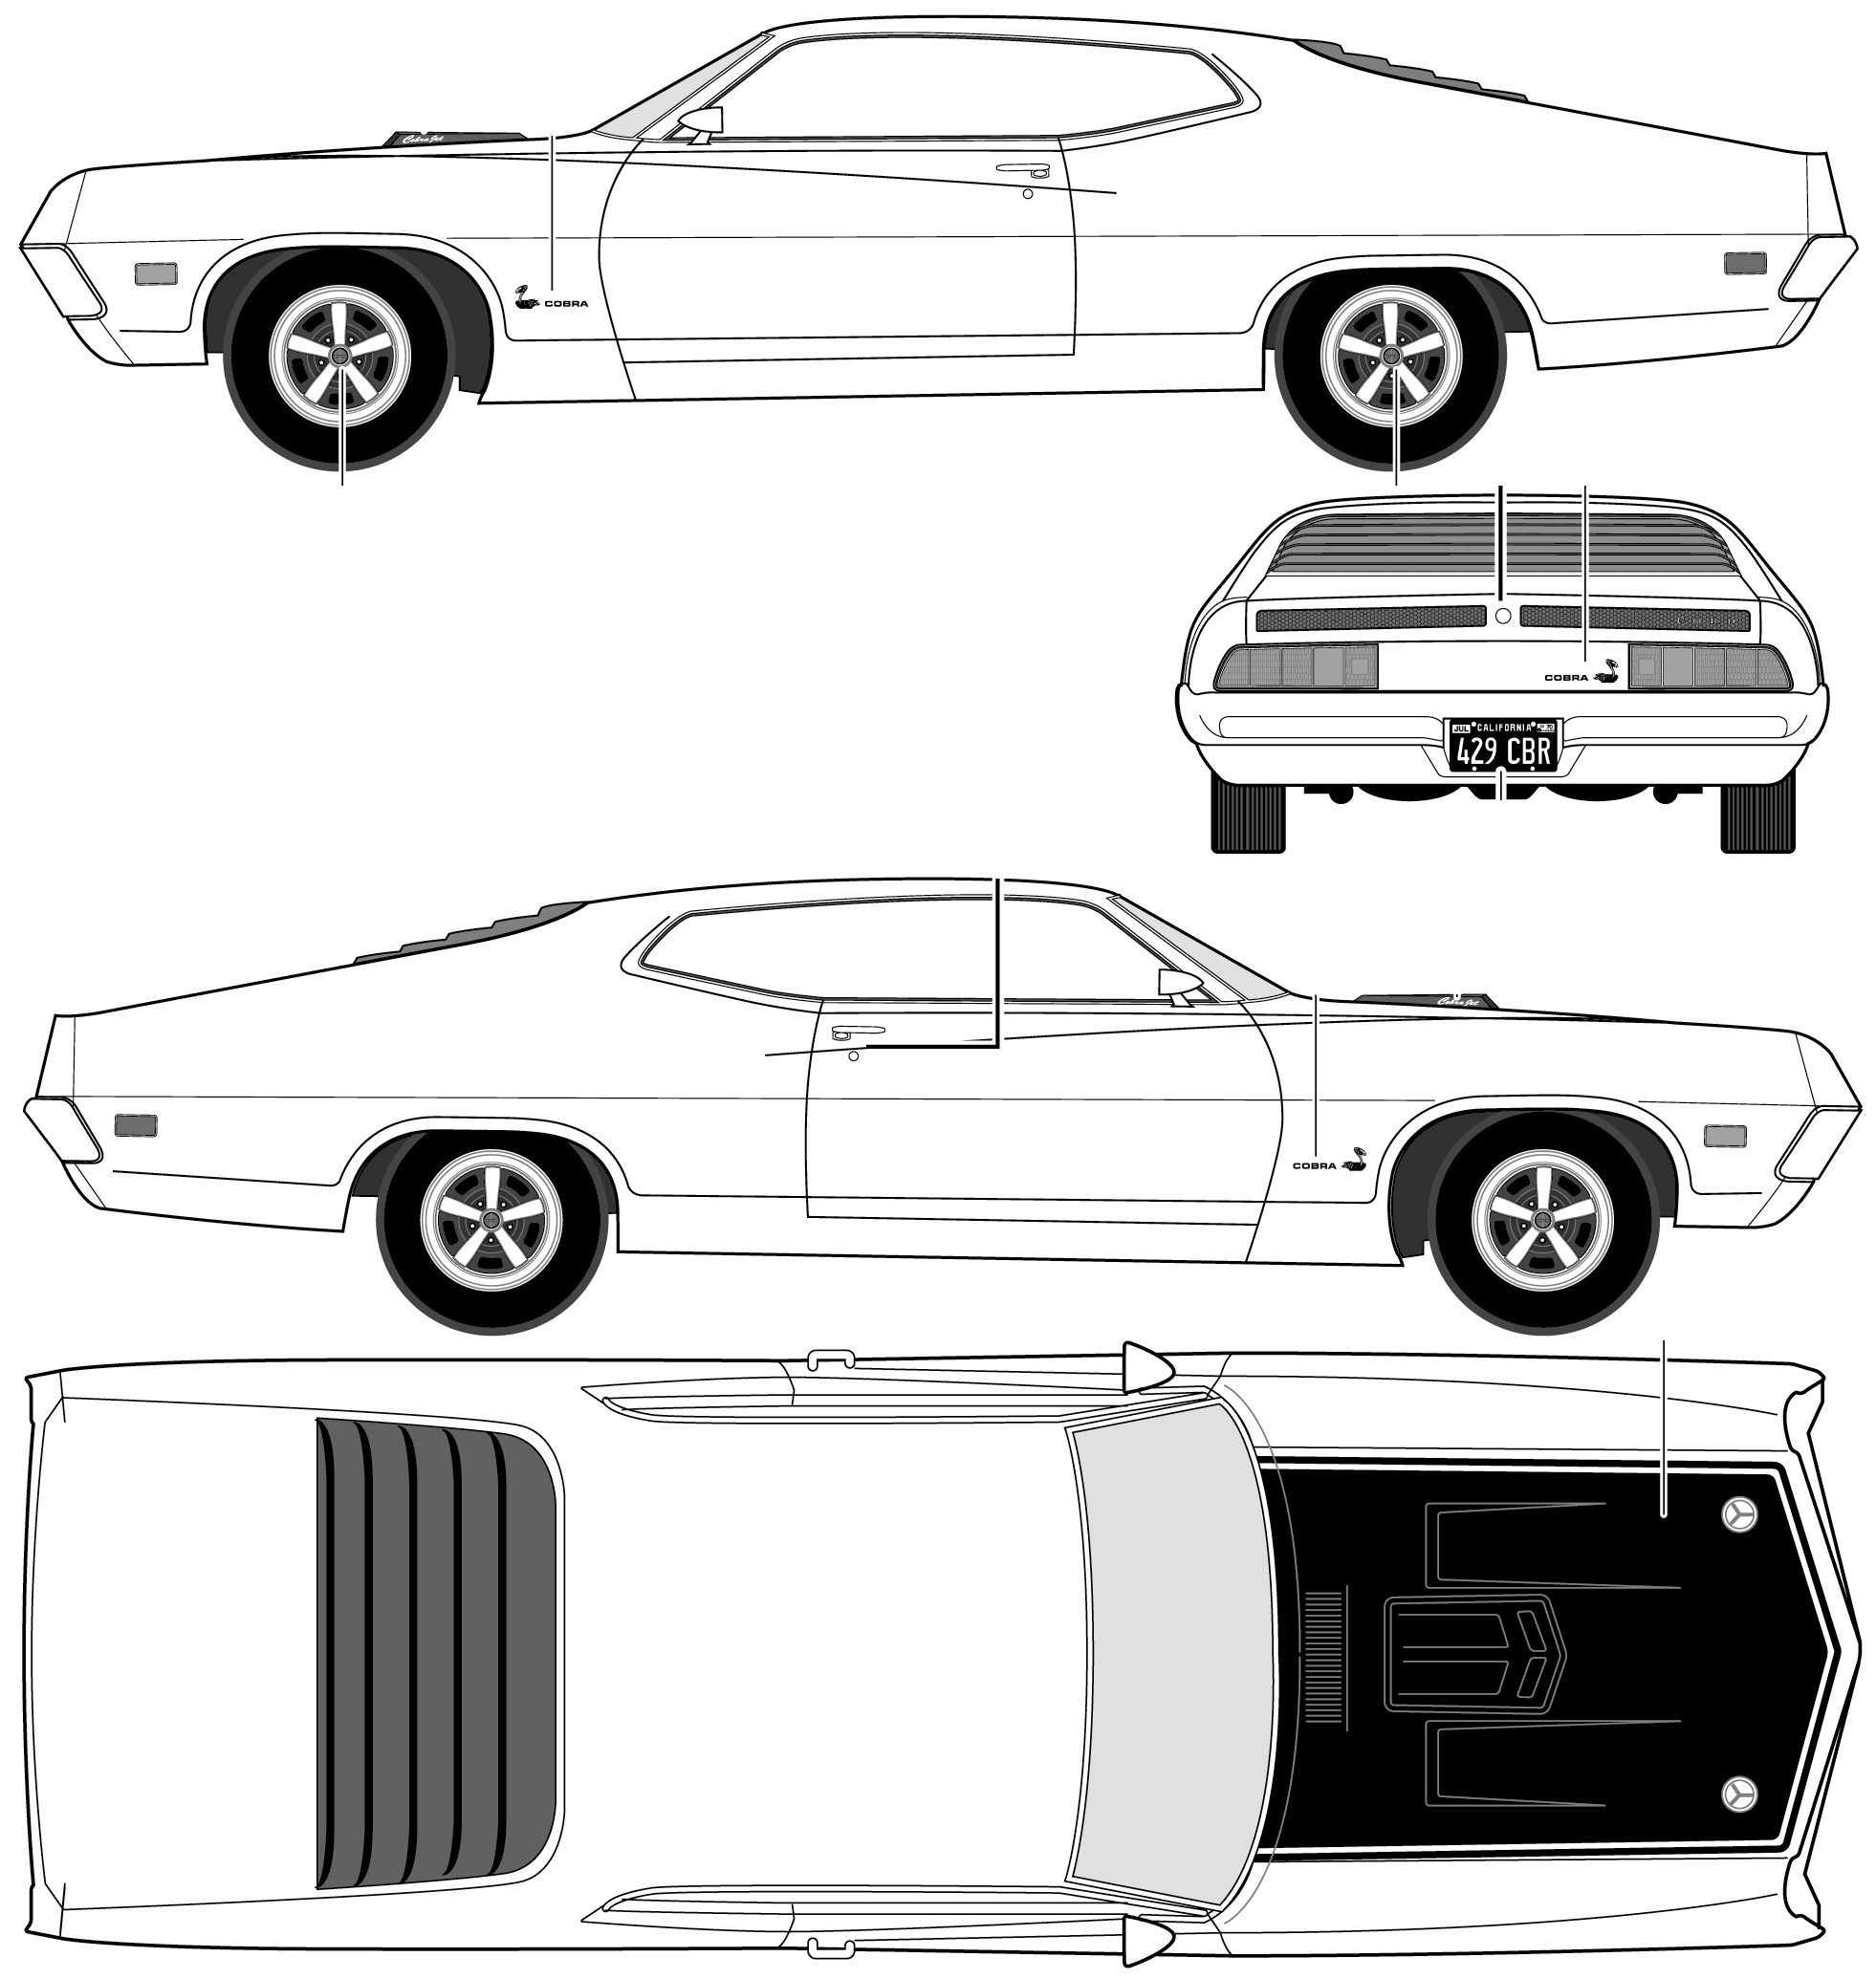 Ford torino cobra blueprint mechanical blue prints pinterest ford torino cobra blueprint malvernweather